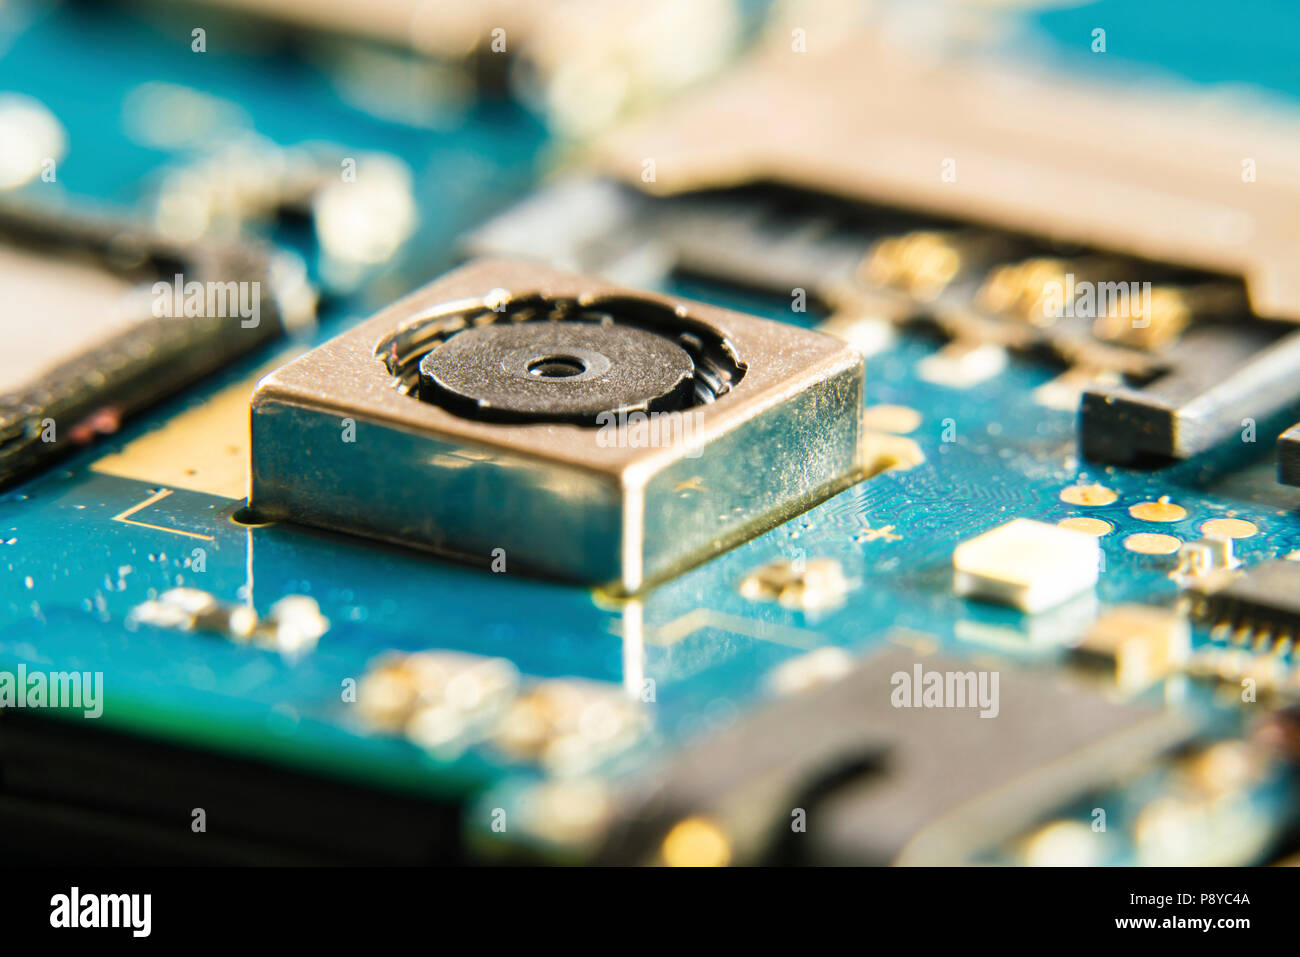 Circuit Board Repair Stock Photos & Circuit Board Repair Stock ...